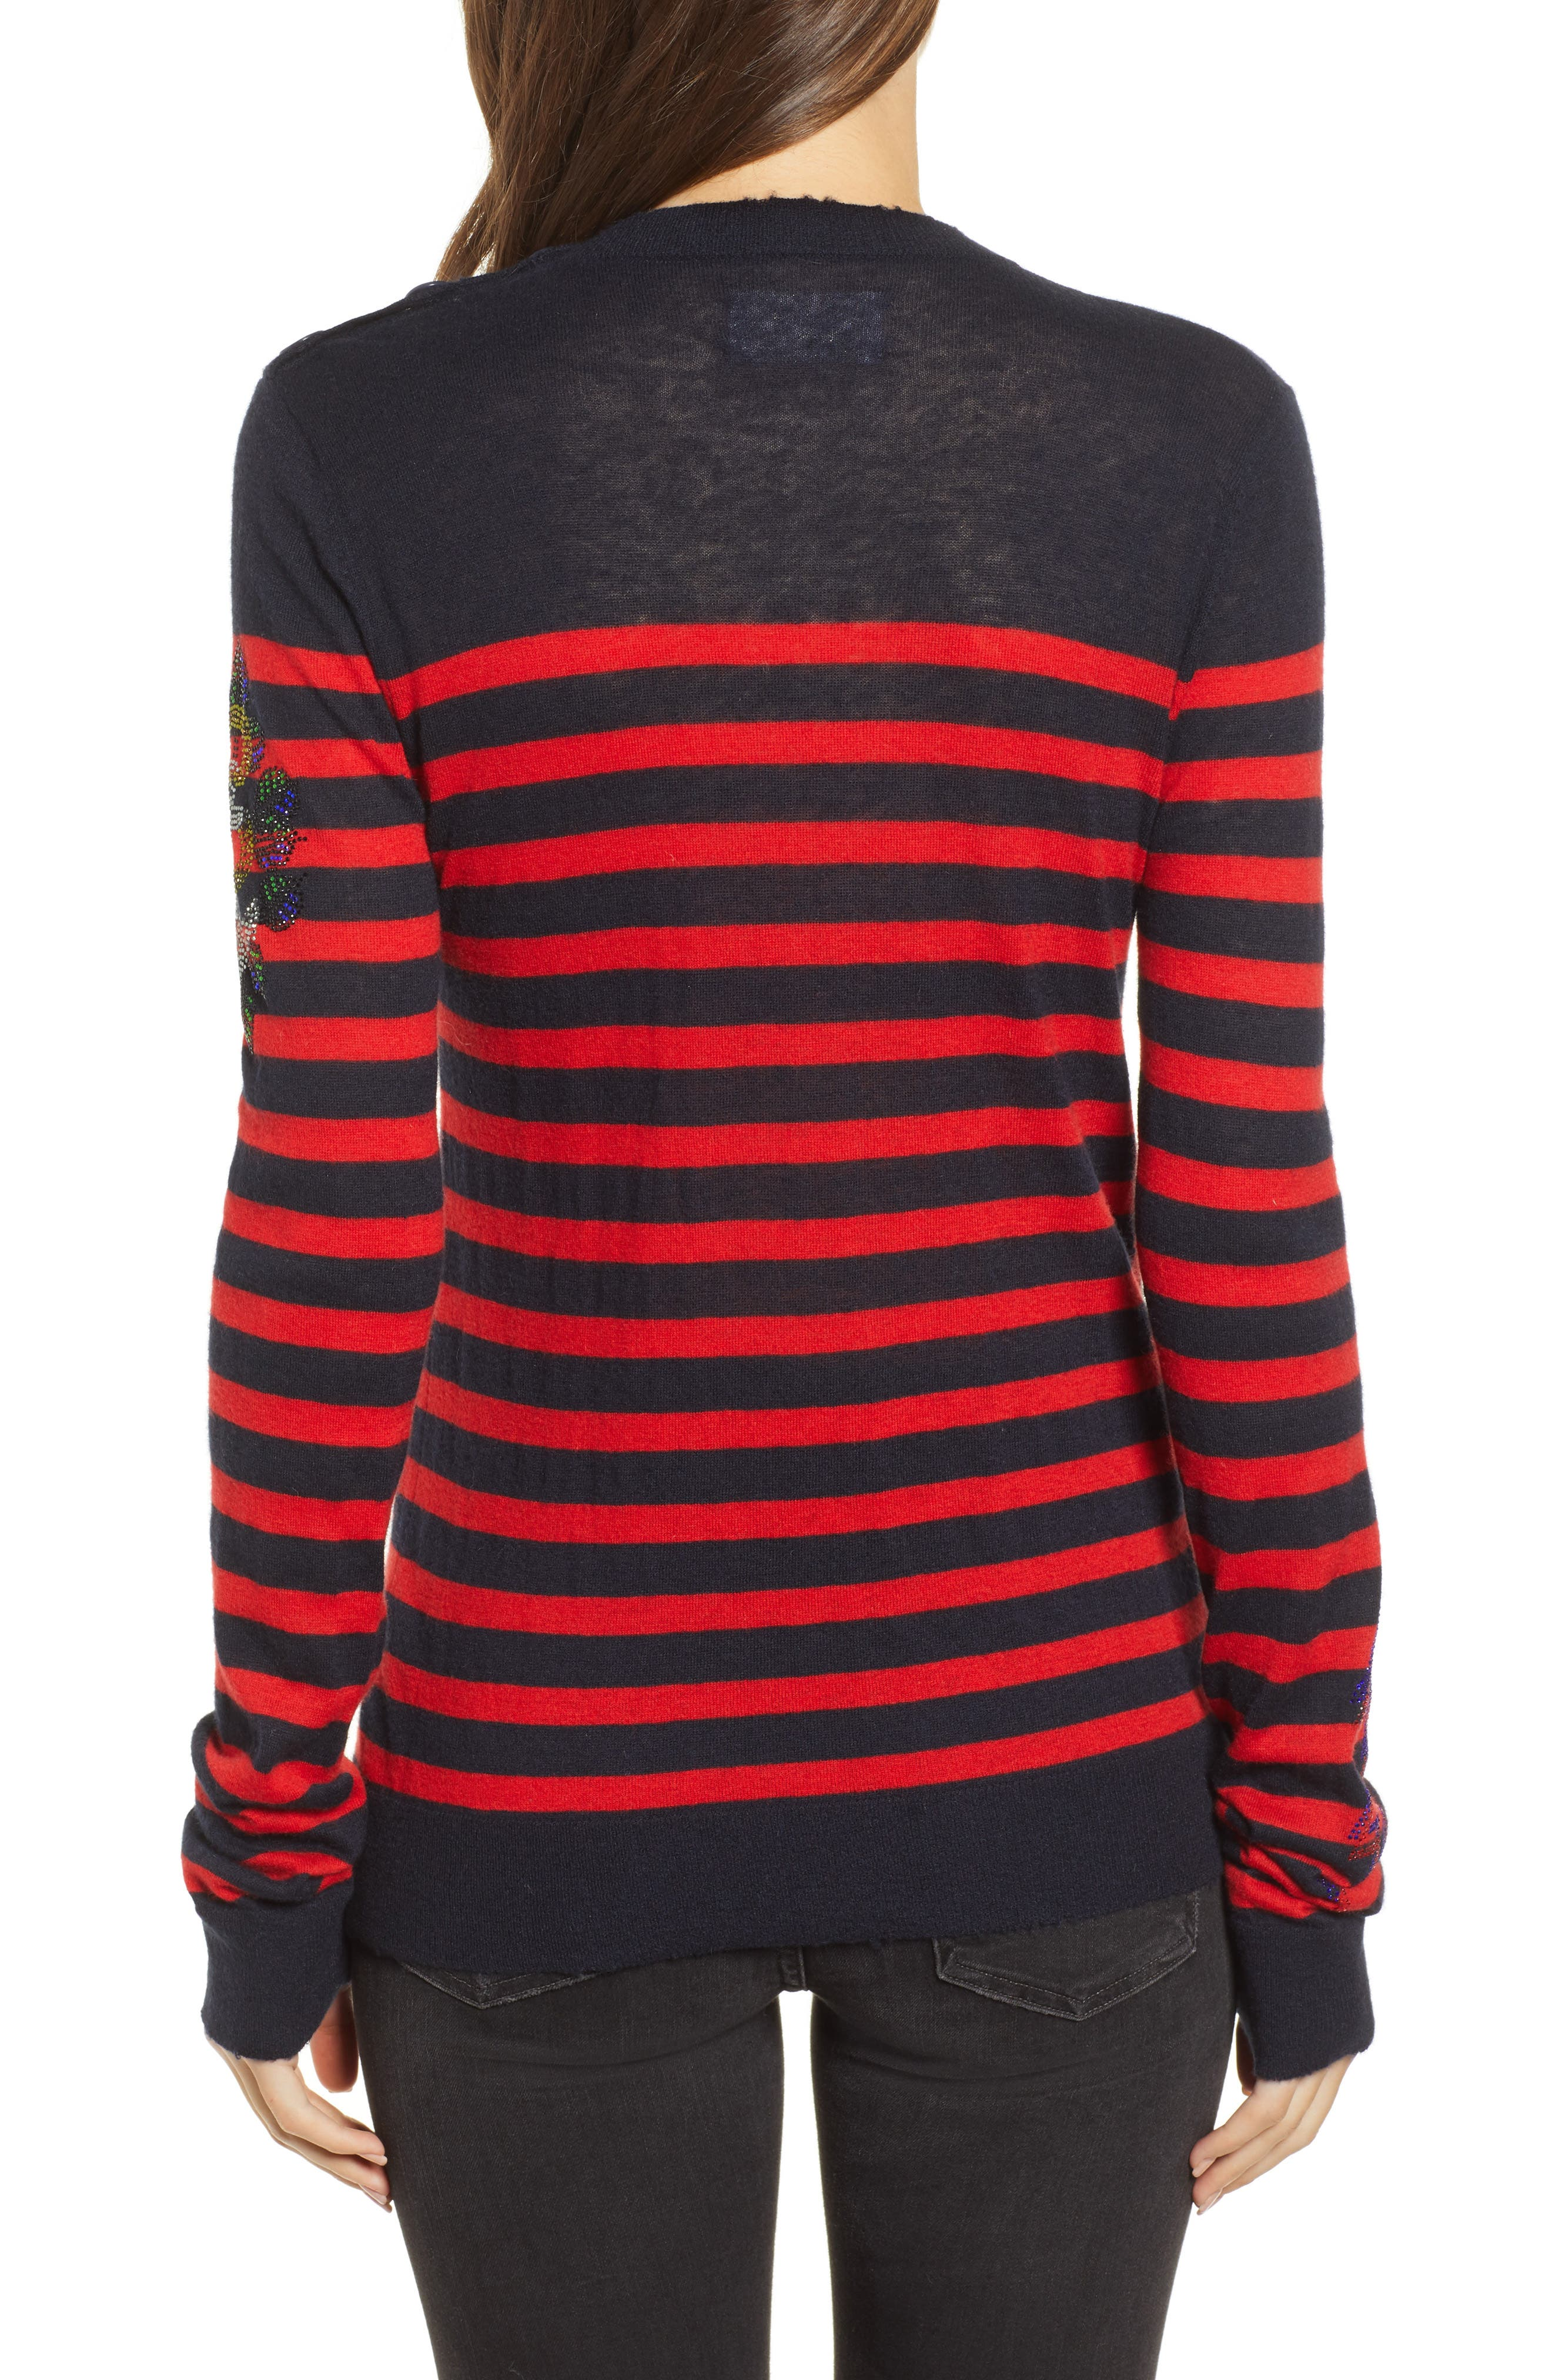 Delly Bis Cashmere Sweater,                             Alternate thumbnail 2, color,                             ENCRE/ ROUGE